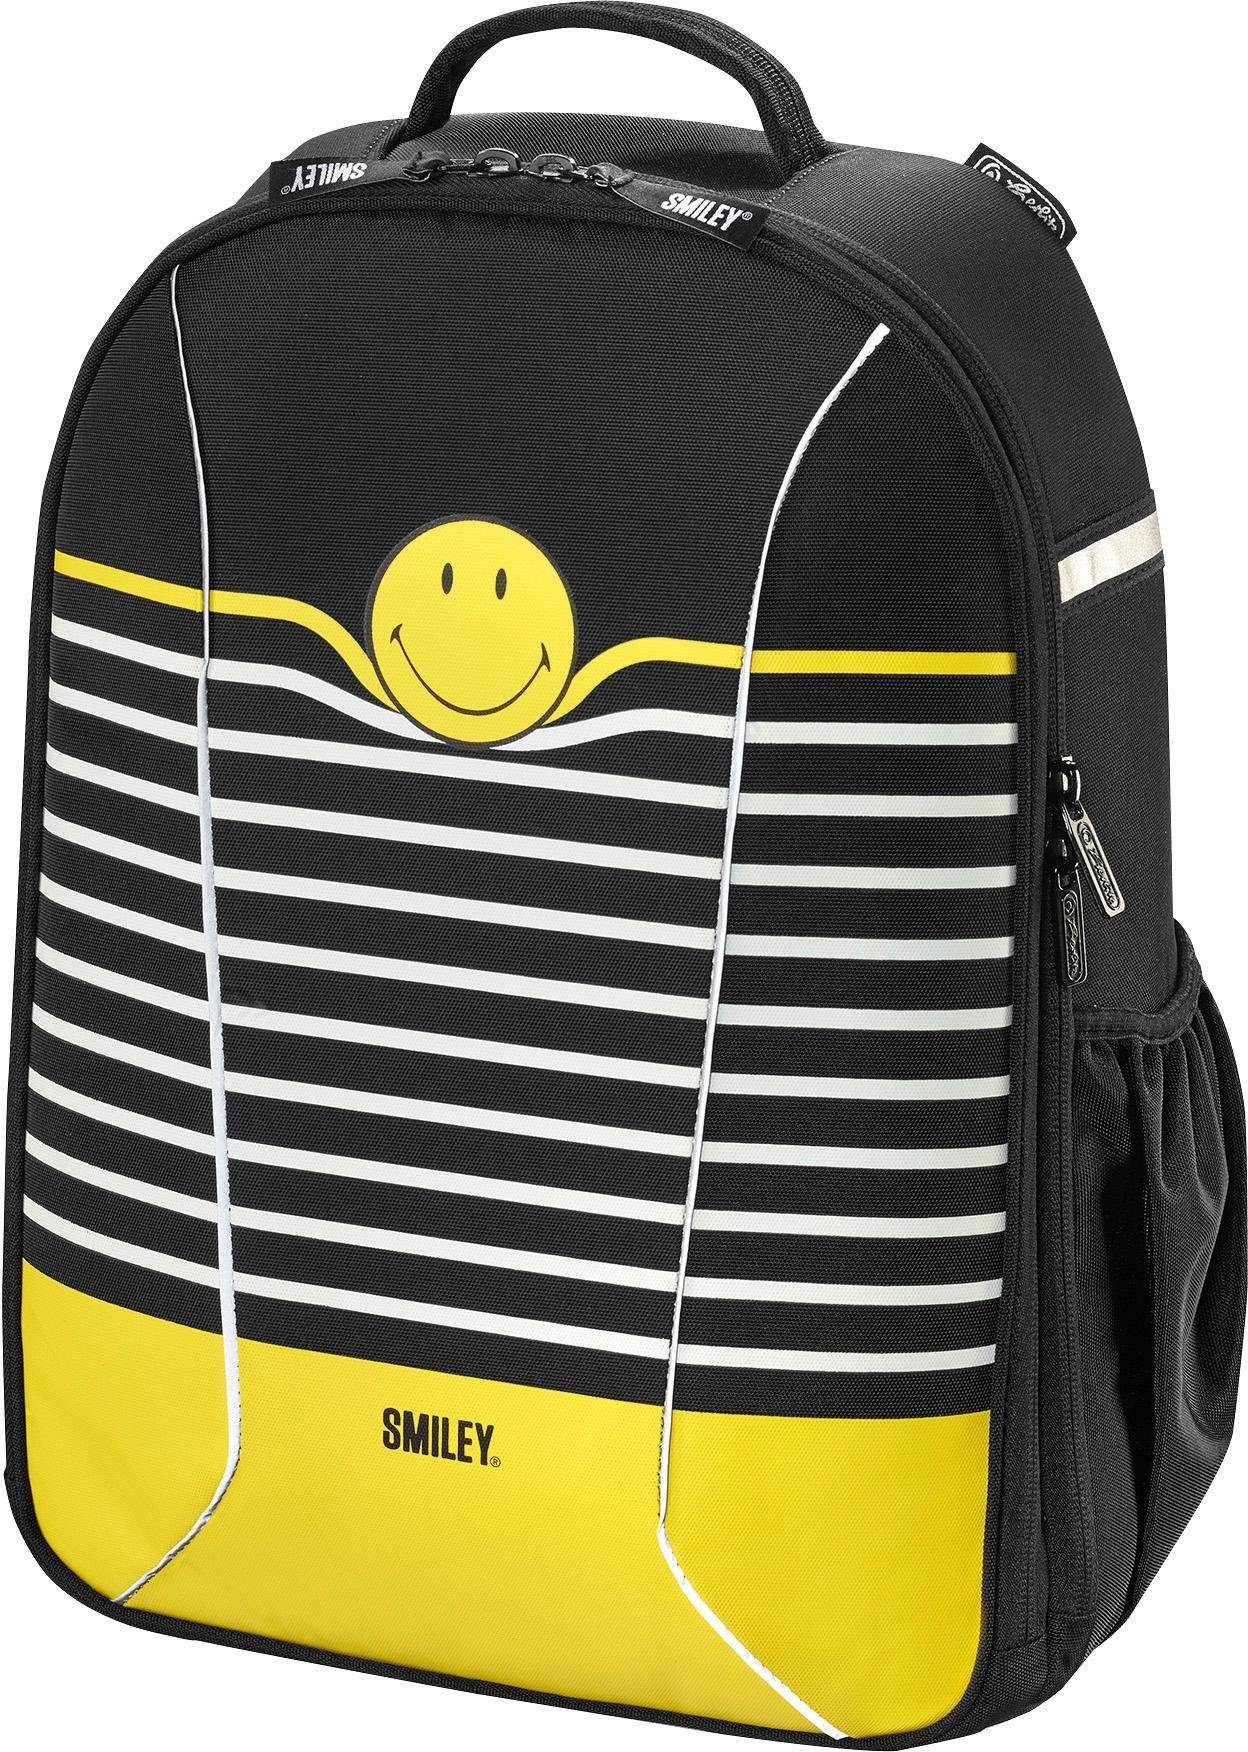 Herlitz Schulrucksack, »airgo, Smiley B&Y Stripes«